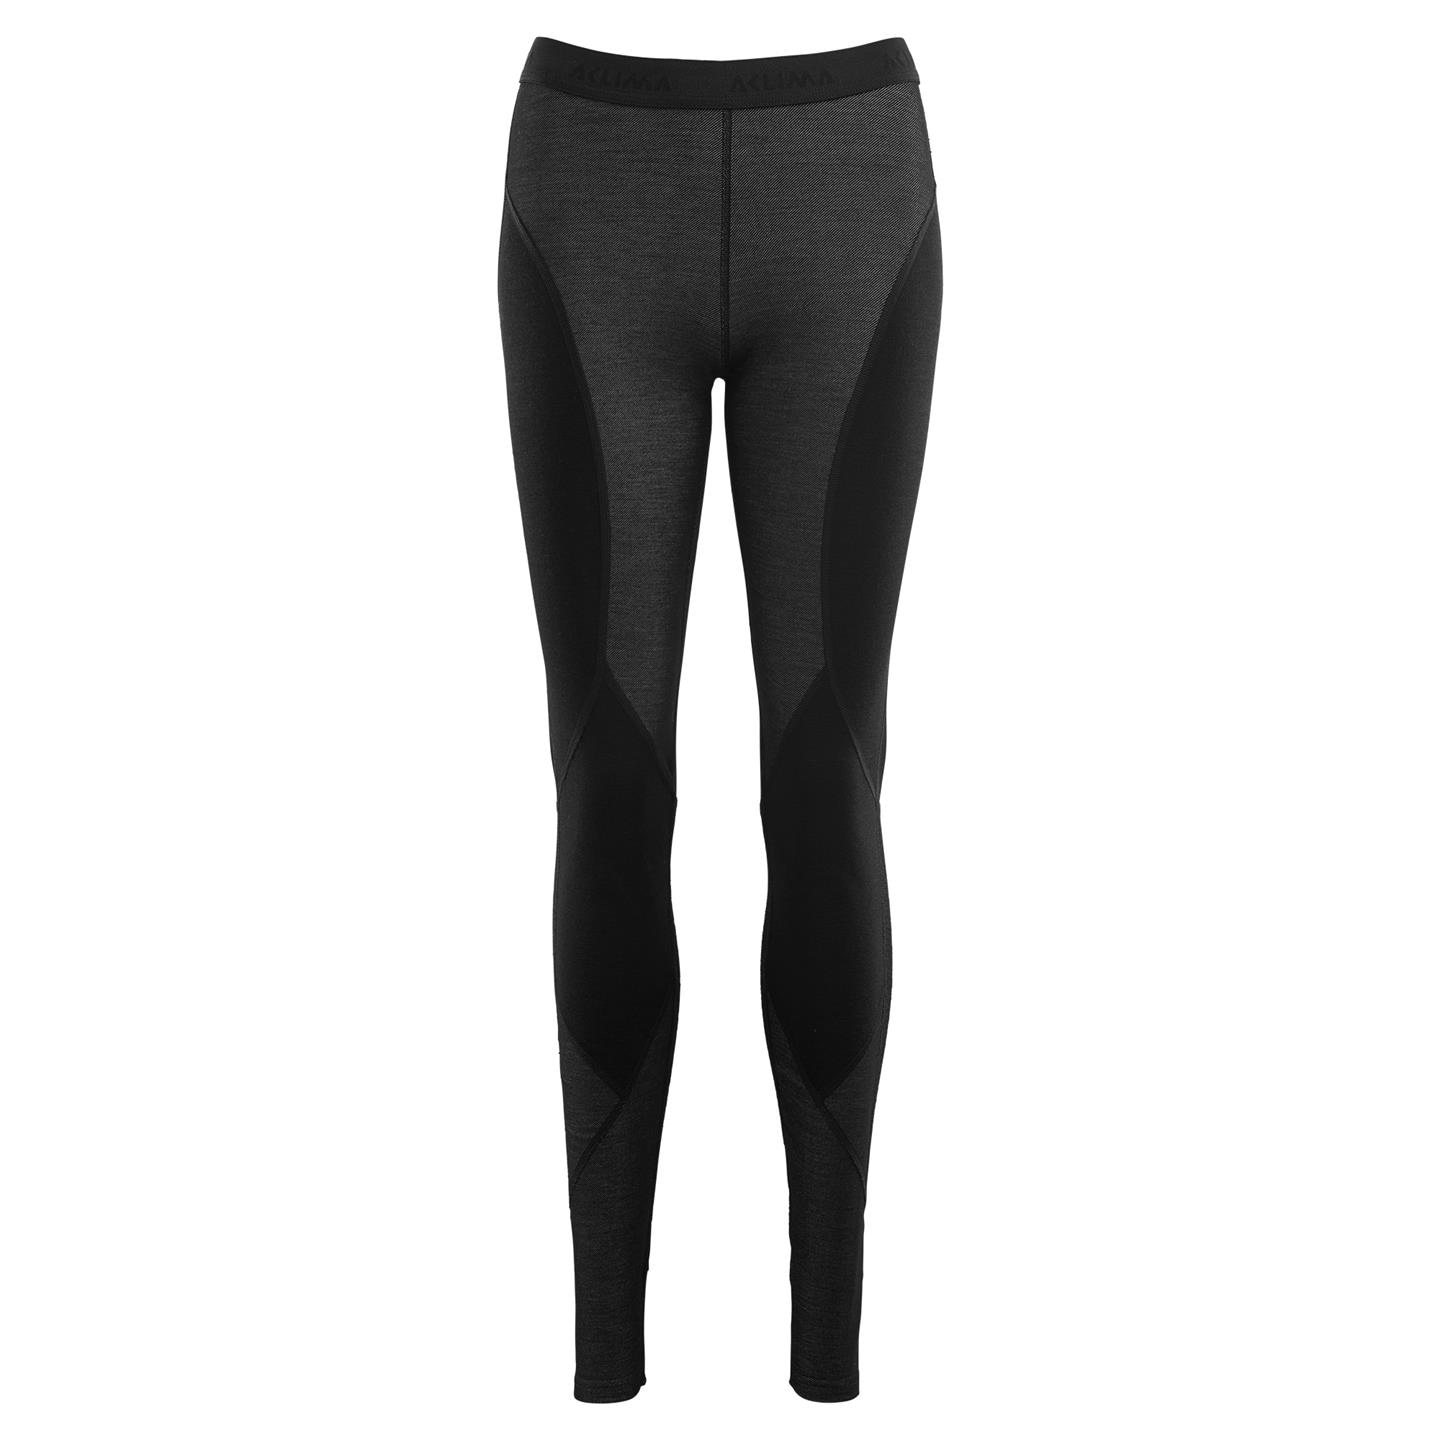 Aclima FlexWool Tights, W's